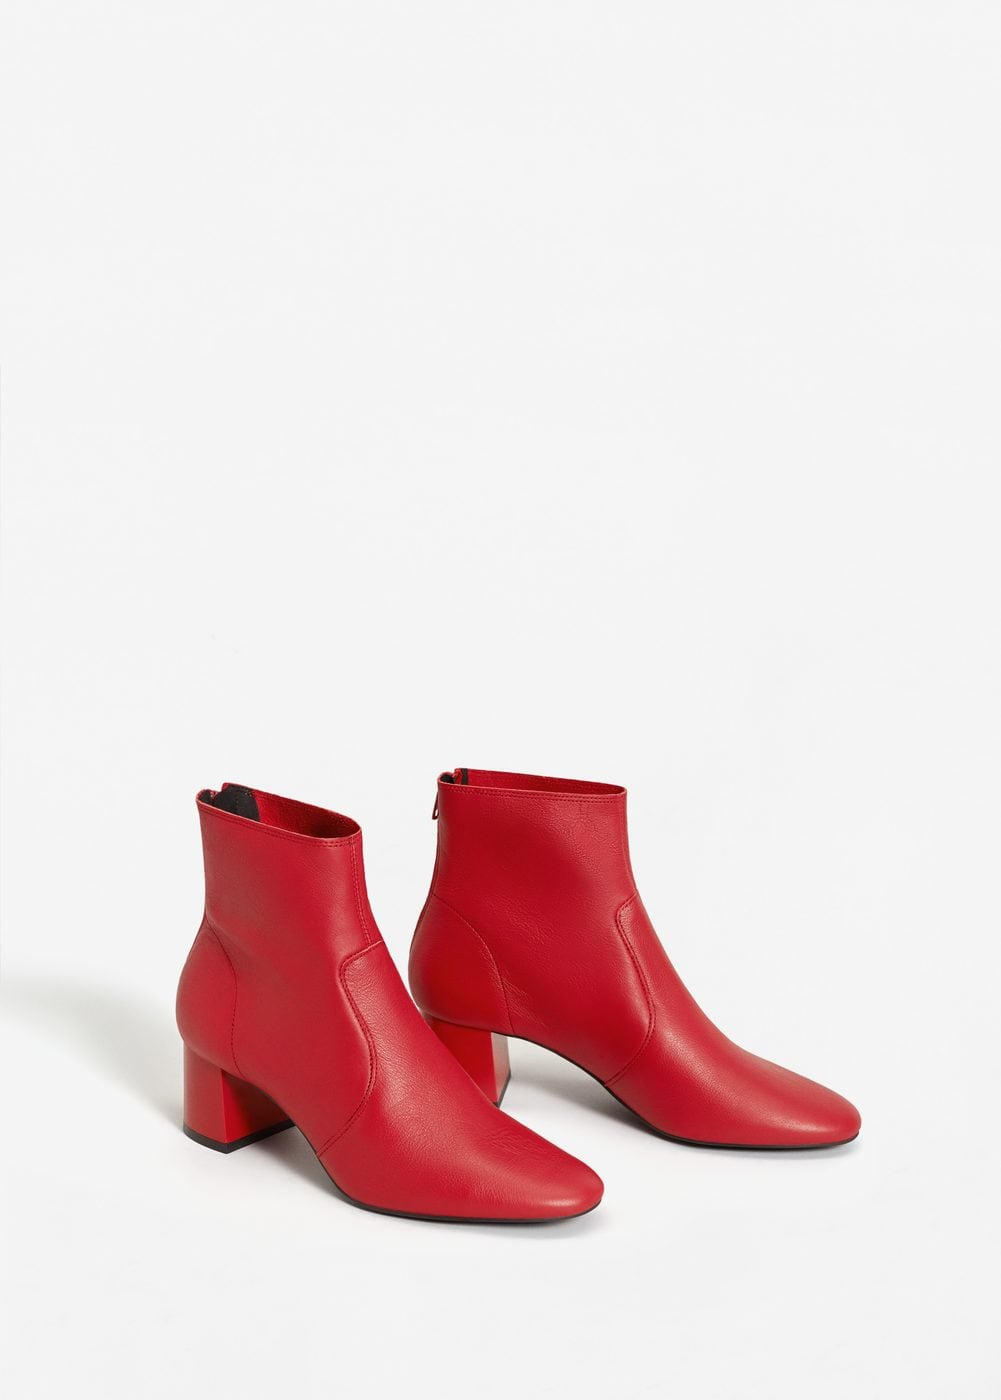 <a href='https://shop.mango.com/hu-en/women/shoes-boots-and-ankle-boots/heel-leather-ankle-boot_13063703.html?c=70&n=1&s=accesorios.accesorio;42,342,442' target='_blank' rel='noopener noreferrer'>Mango</a></p>